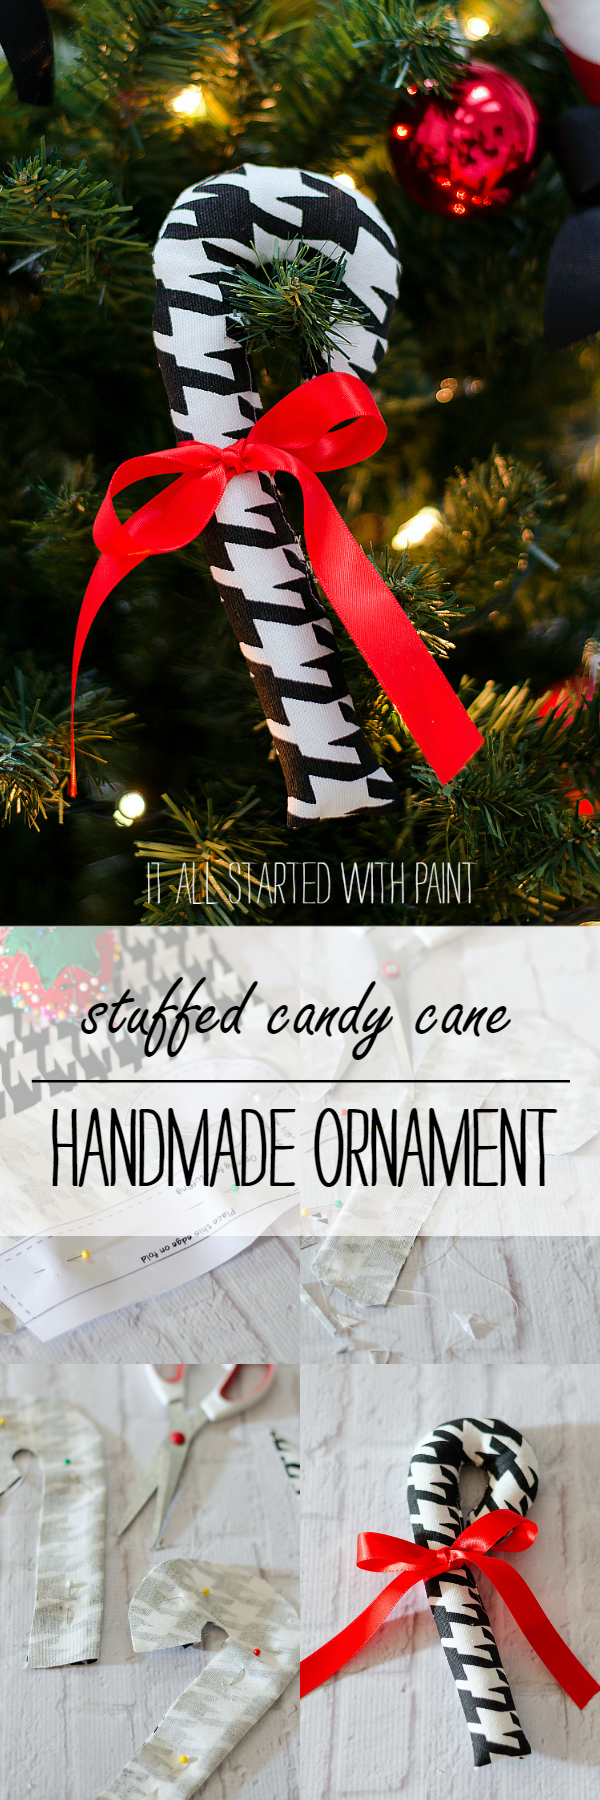 Stuffed Candy Cane Homemade Ornament for Christmas